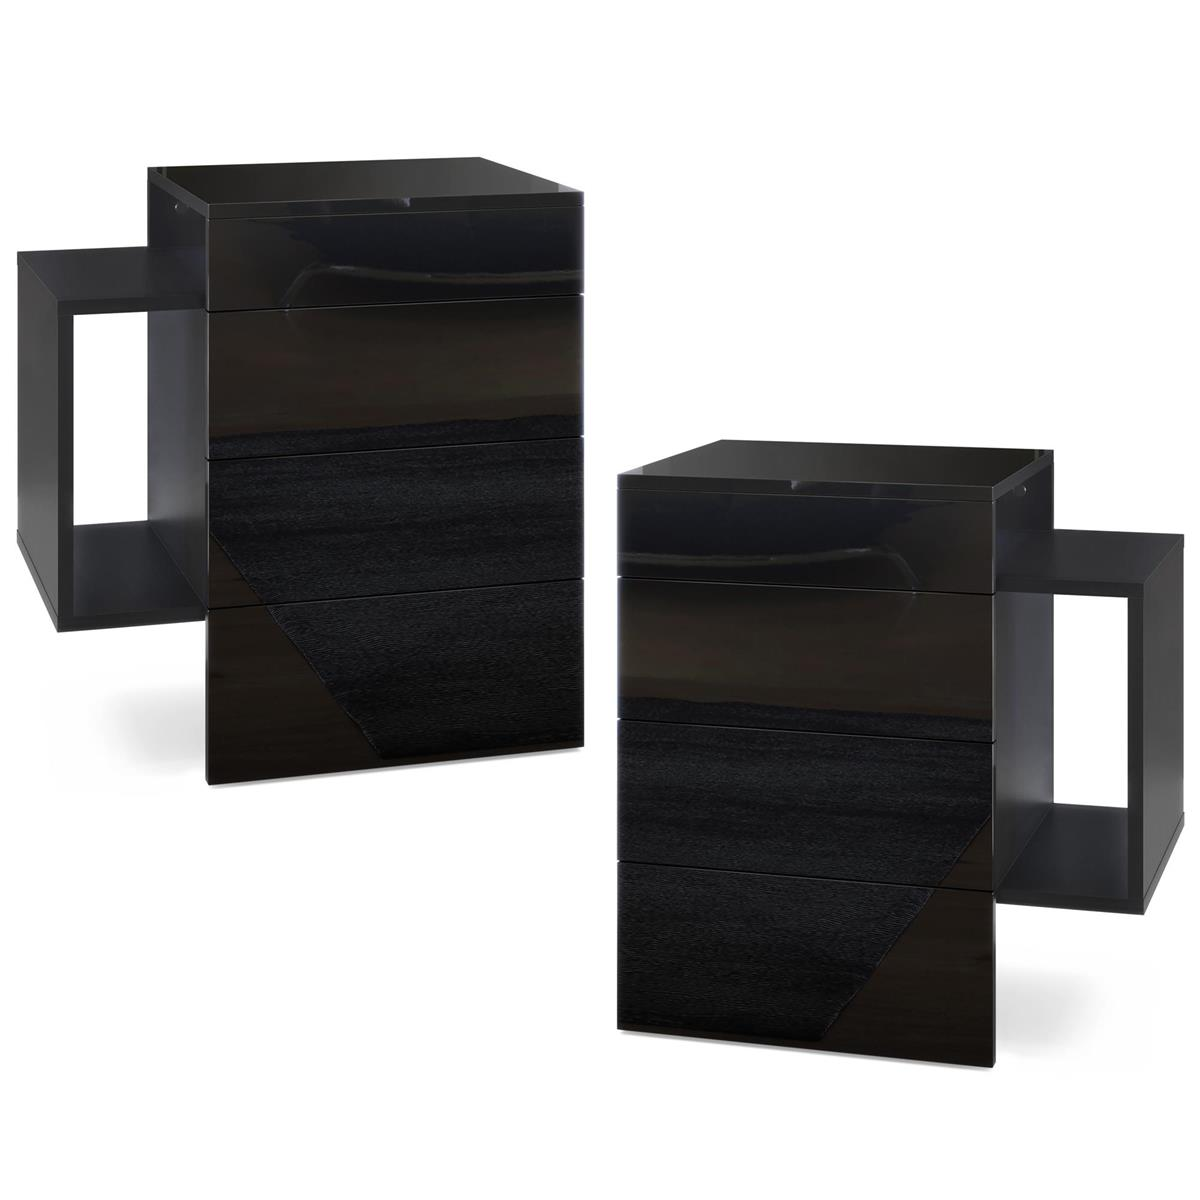 Table de chevet de nuit commode queens en noir haute - Table de nuit haute ...